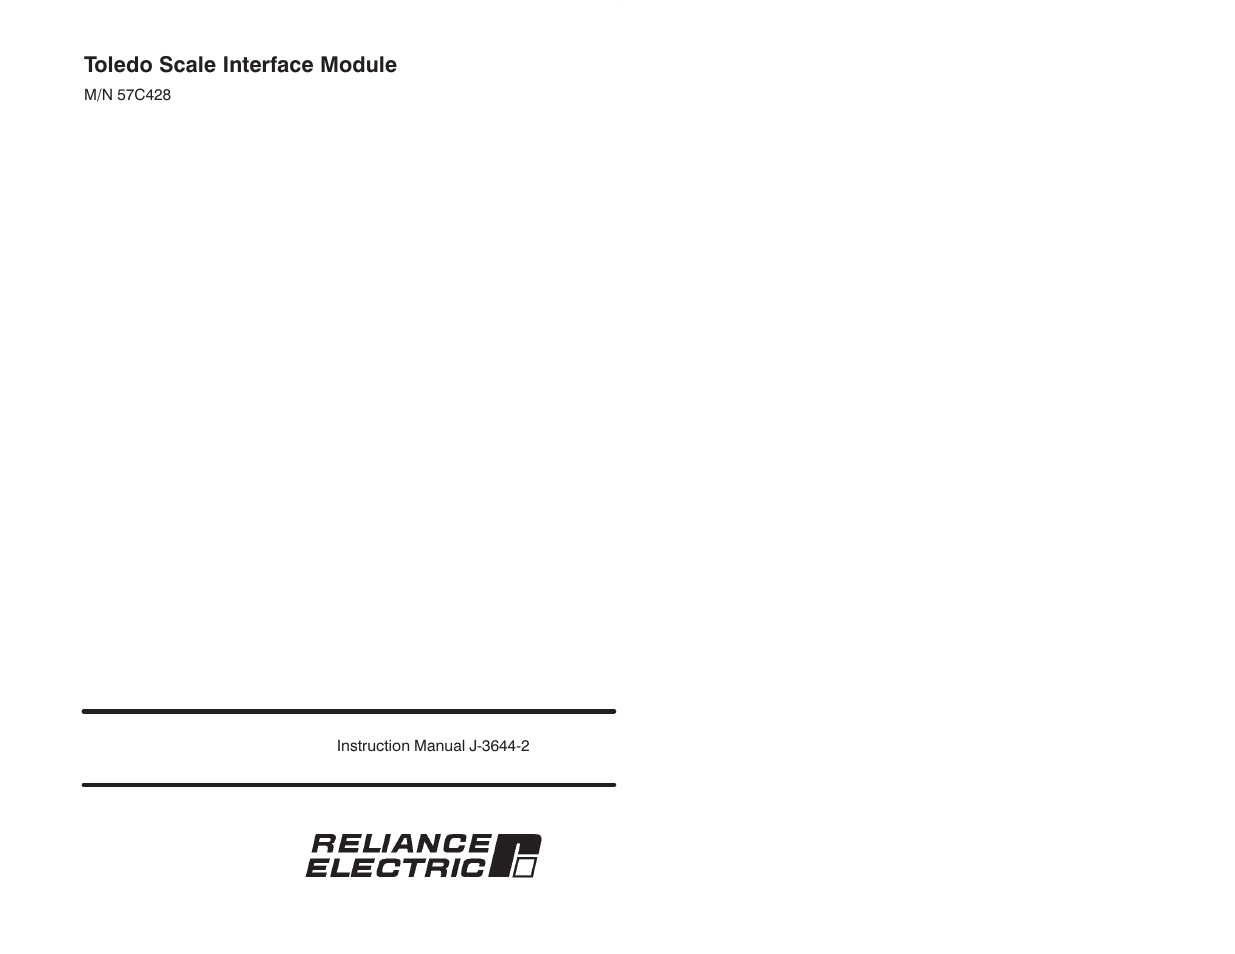 Rockwell Automation 57C428 Toledo Scale Interface Module User Manual